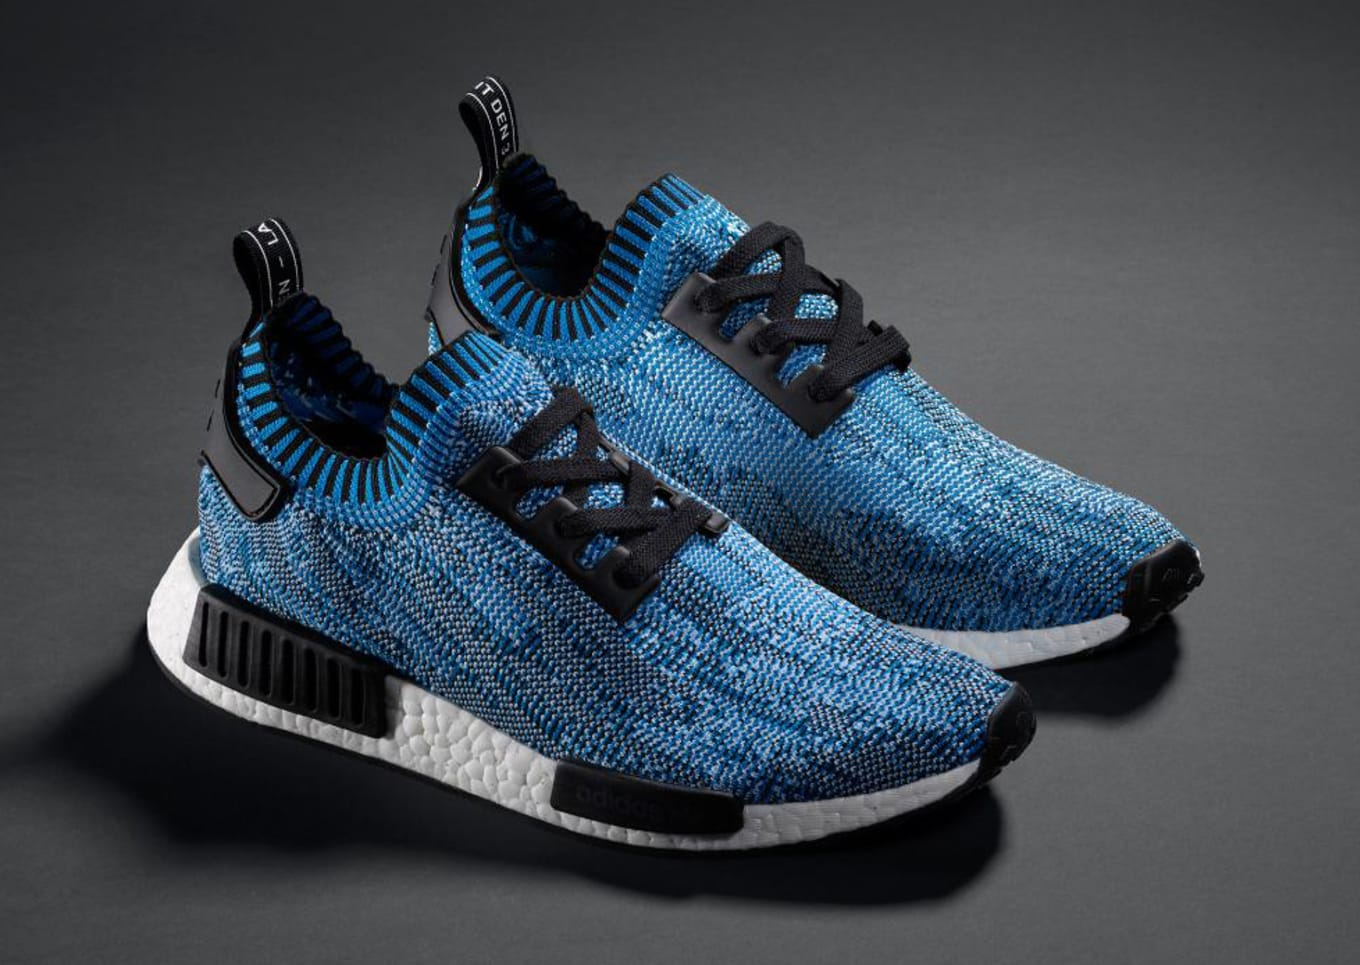 299c42184 Adidas NMD Camo Pack US Release Date